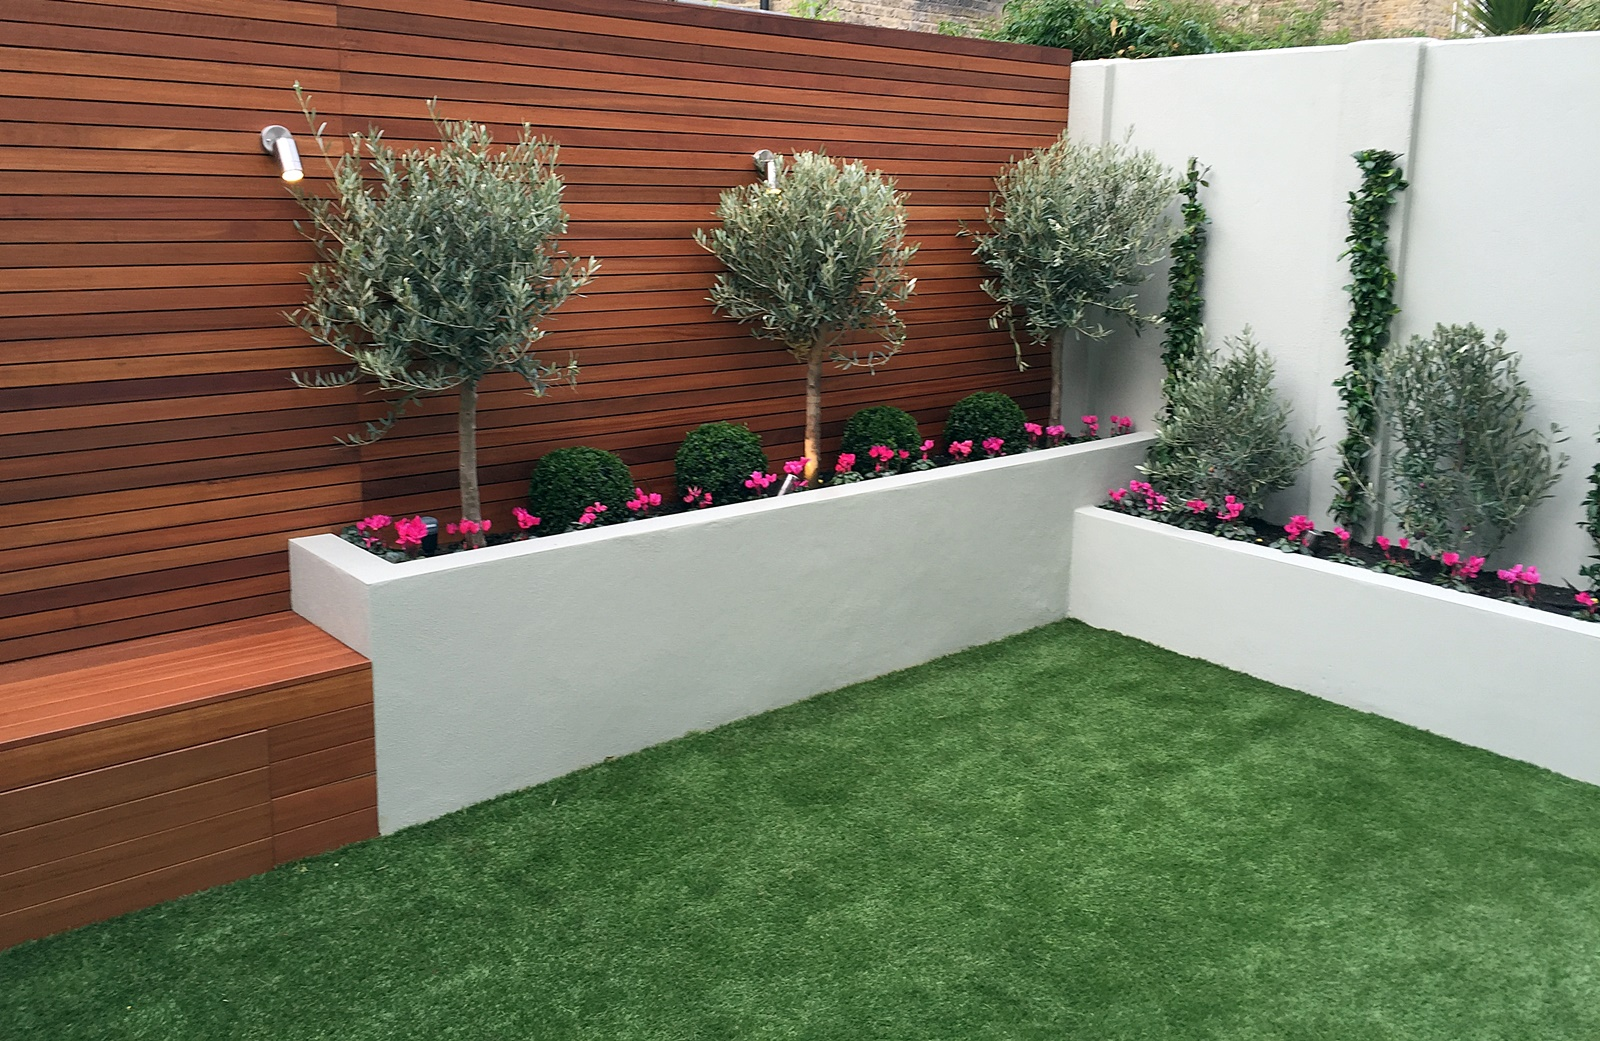 Designer london garden blog for Modern low maintenance garden ideas